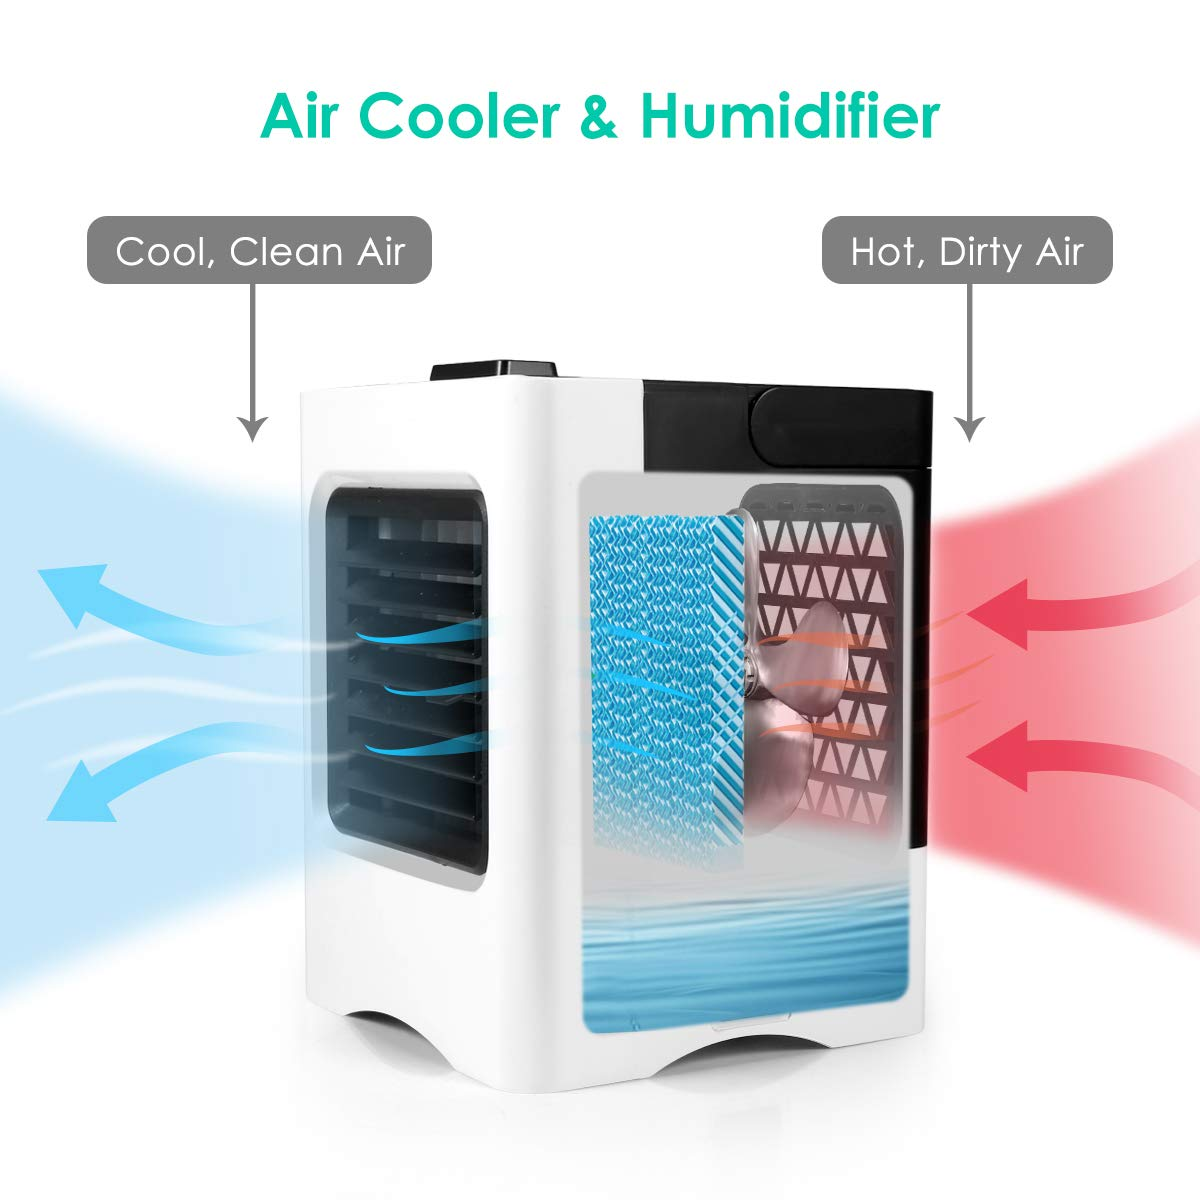 USB Mini Portable Air Conditioner Humidifier Purifier Desktop Air Cooling Fan Air Cooler Fan for Office Home Furniture Accessori